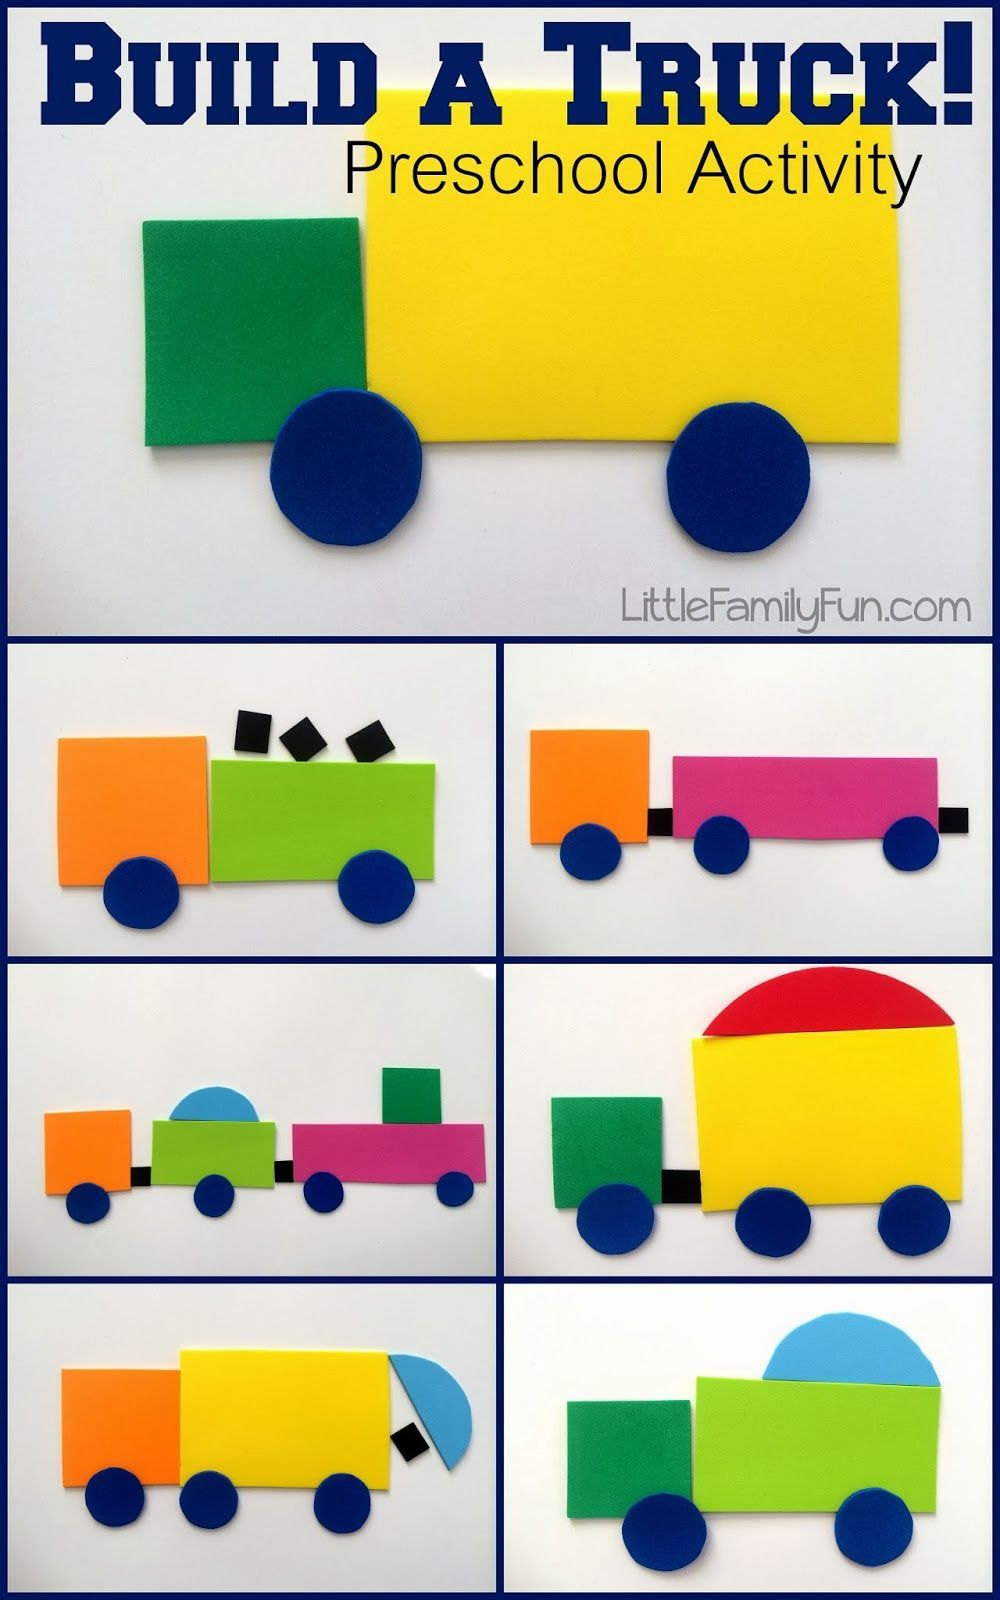 Build a truck fun way to review shapes with preschoolers for Find a builder